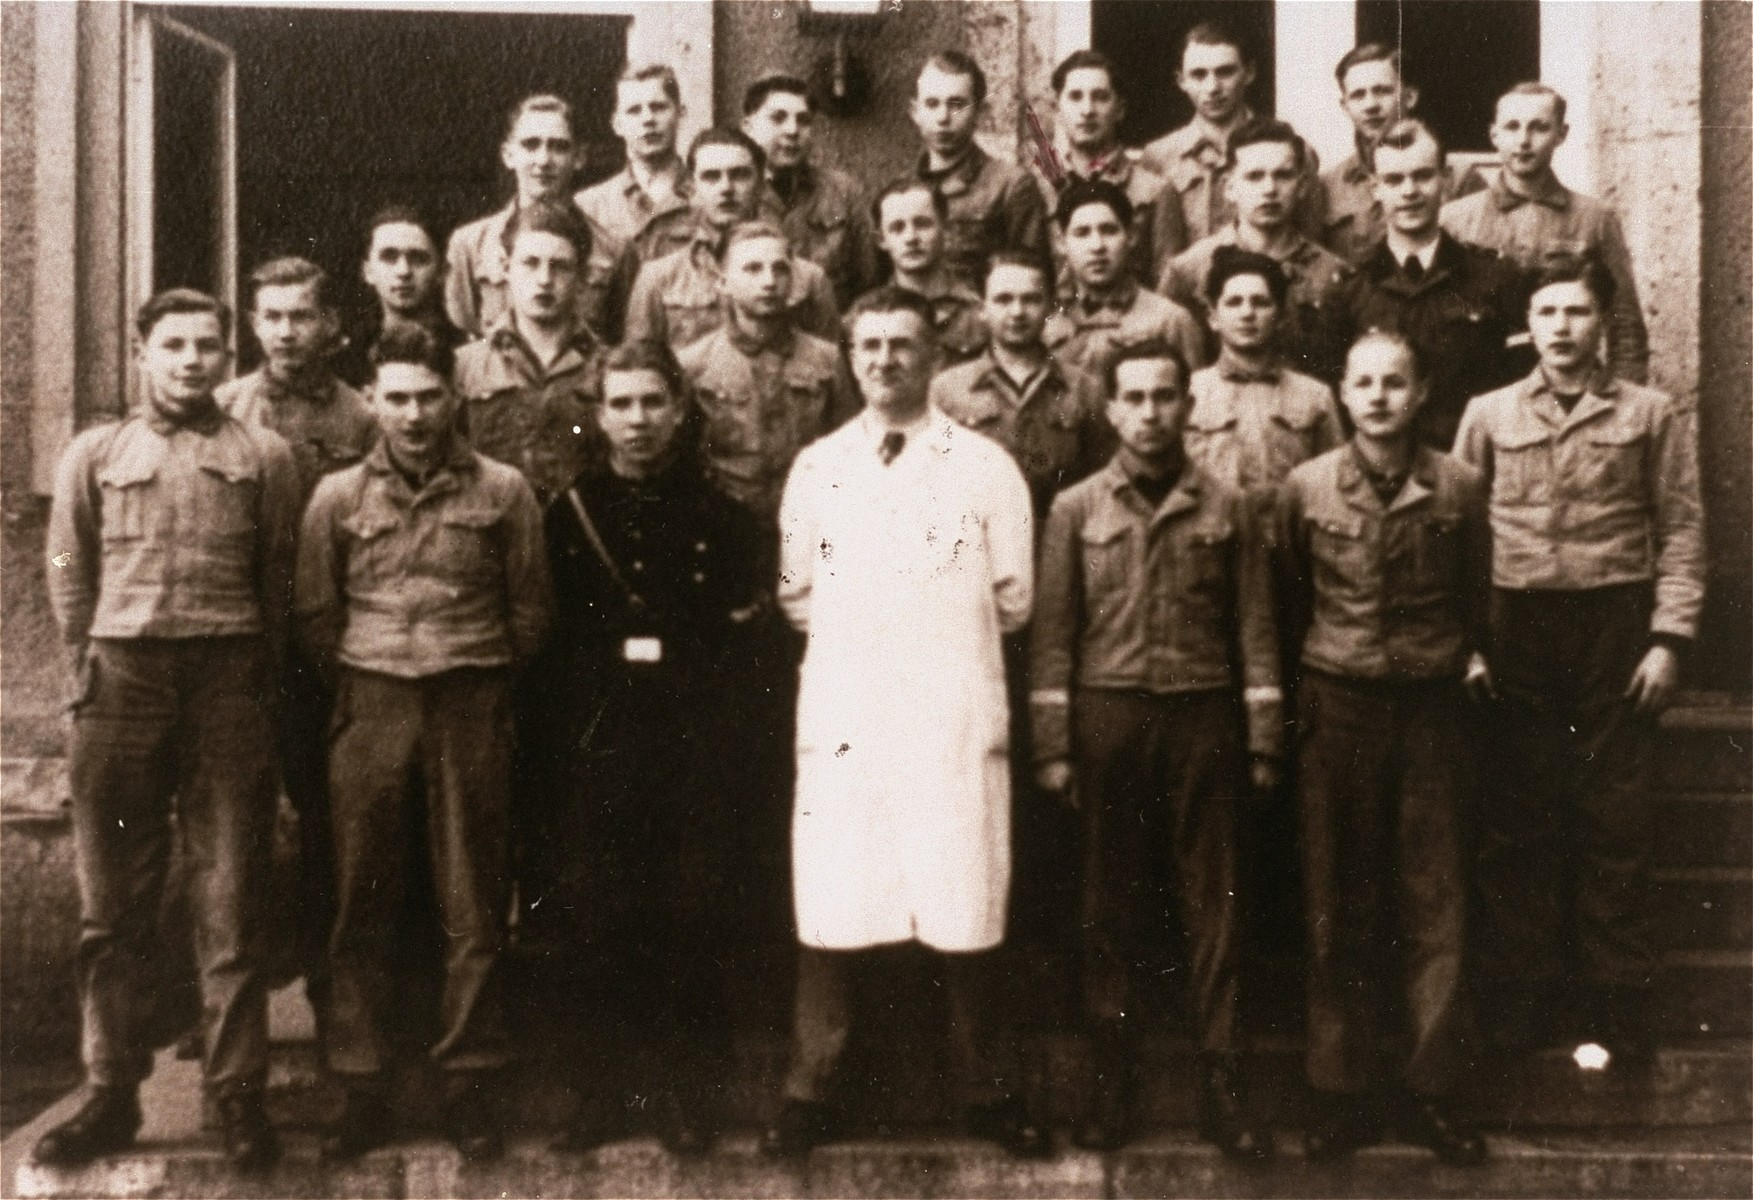 Group portrait of students and their instructor at the Hitler Youth training center in Braunschweig.   Among those pictured is Solly Perel, a German Jew who was living in hiding at the school (third row from the front, third from the right.)